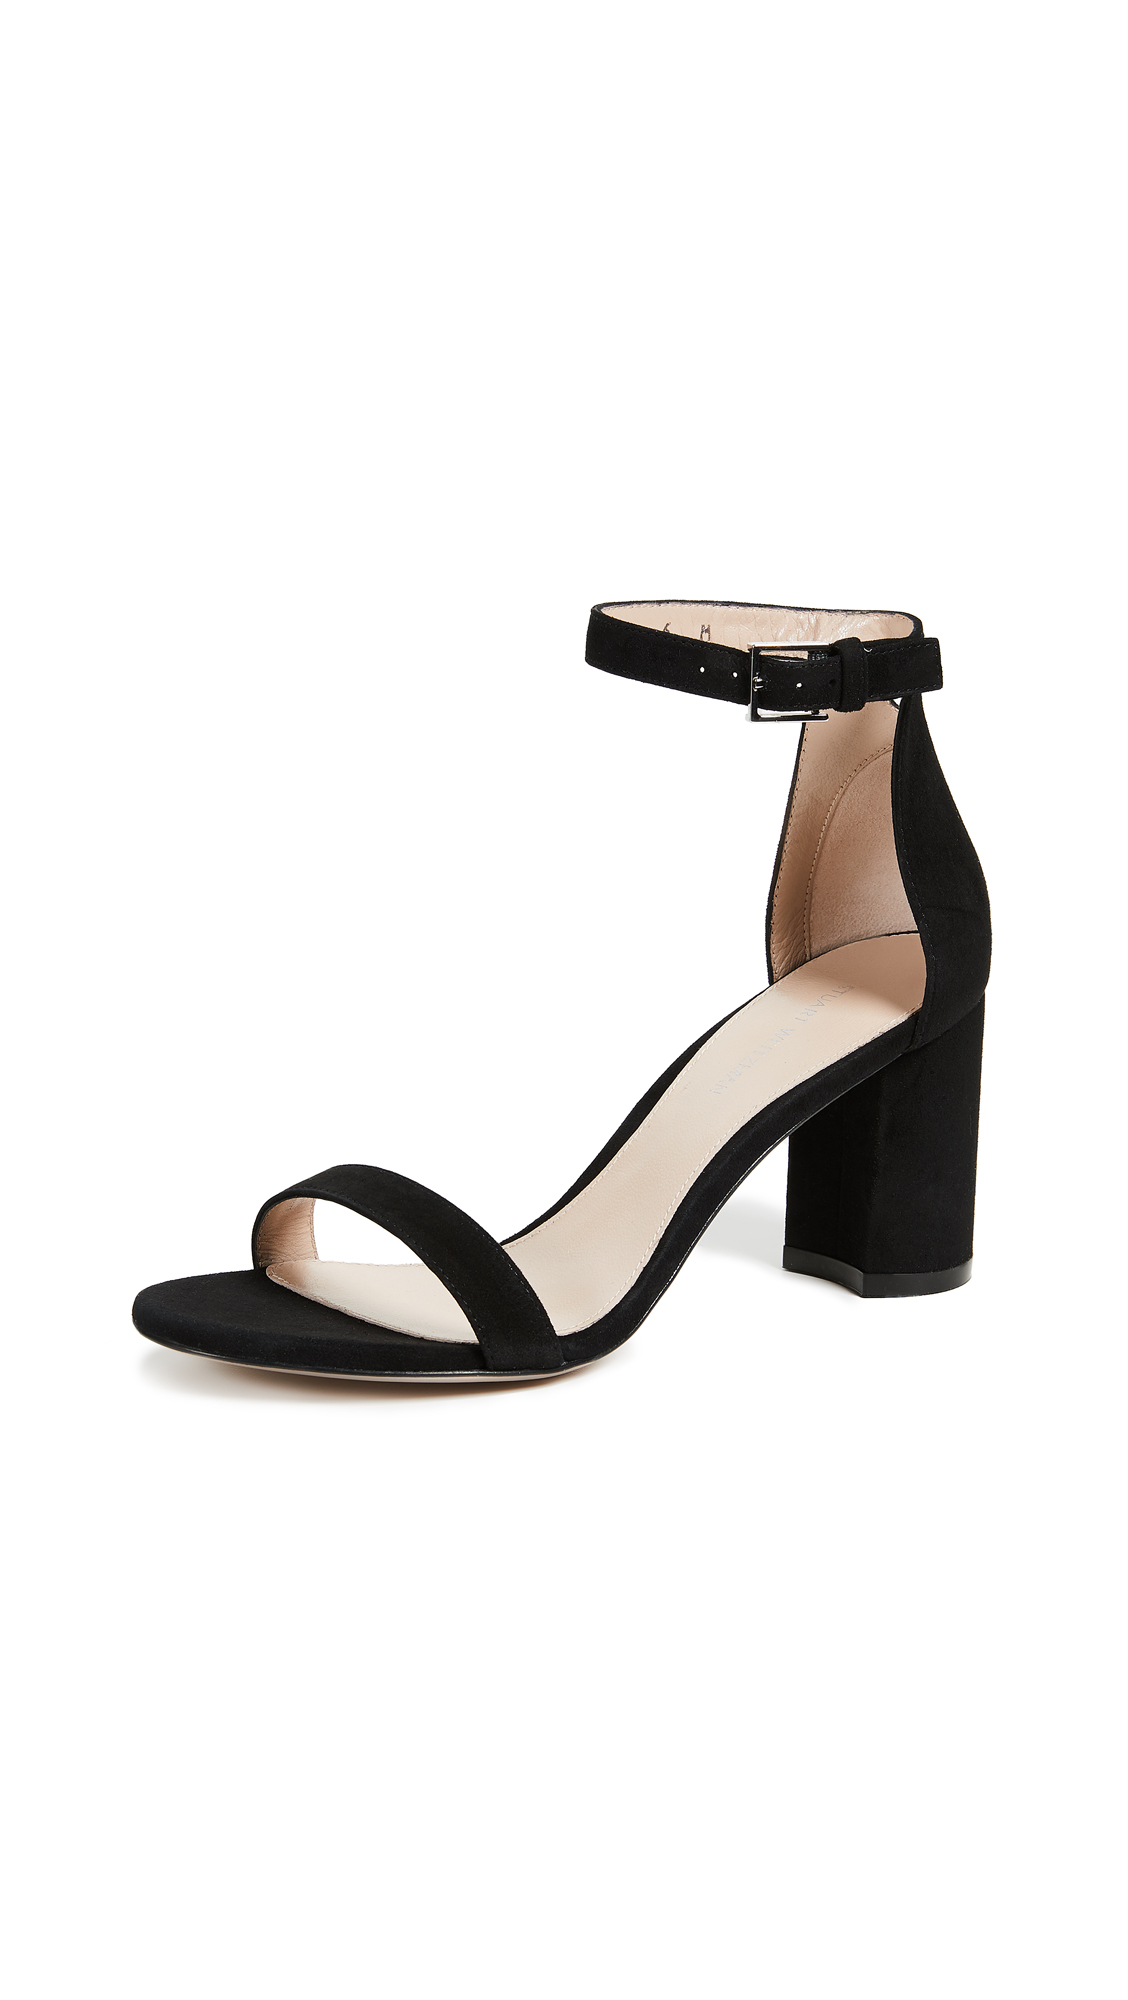 Stuart Weitzman Less Nudist 75mm Sandals - Black